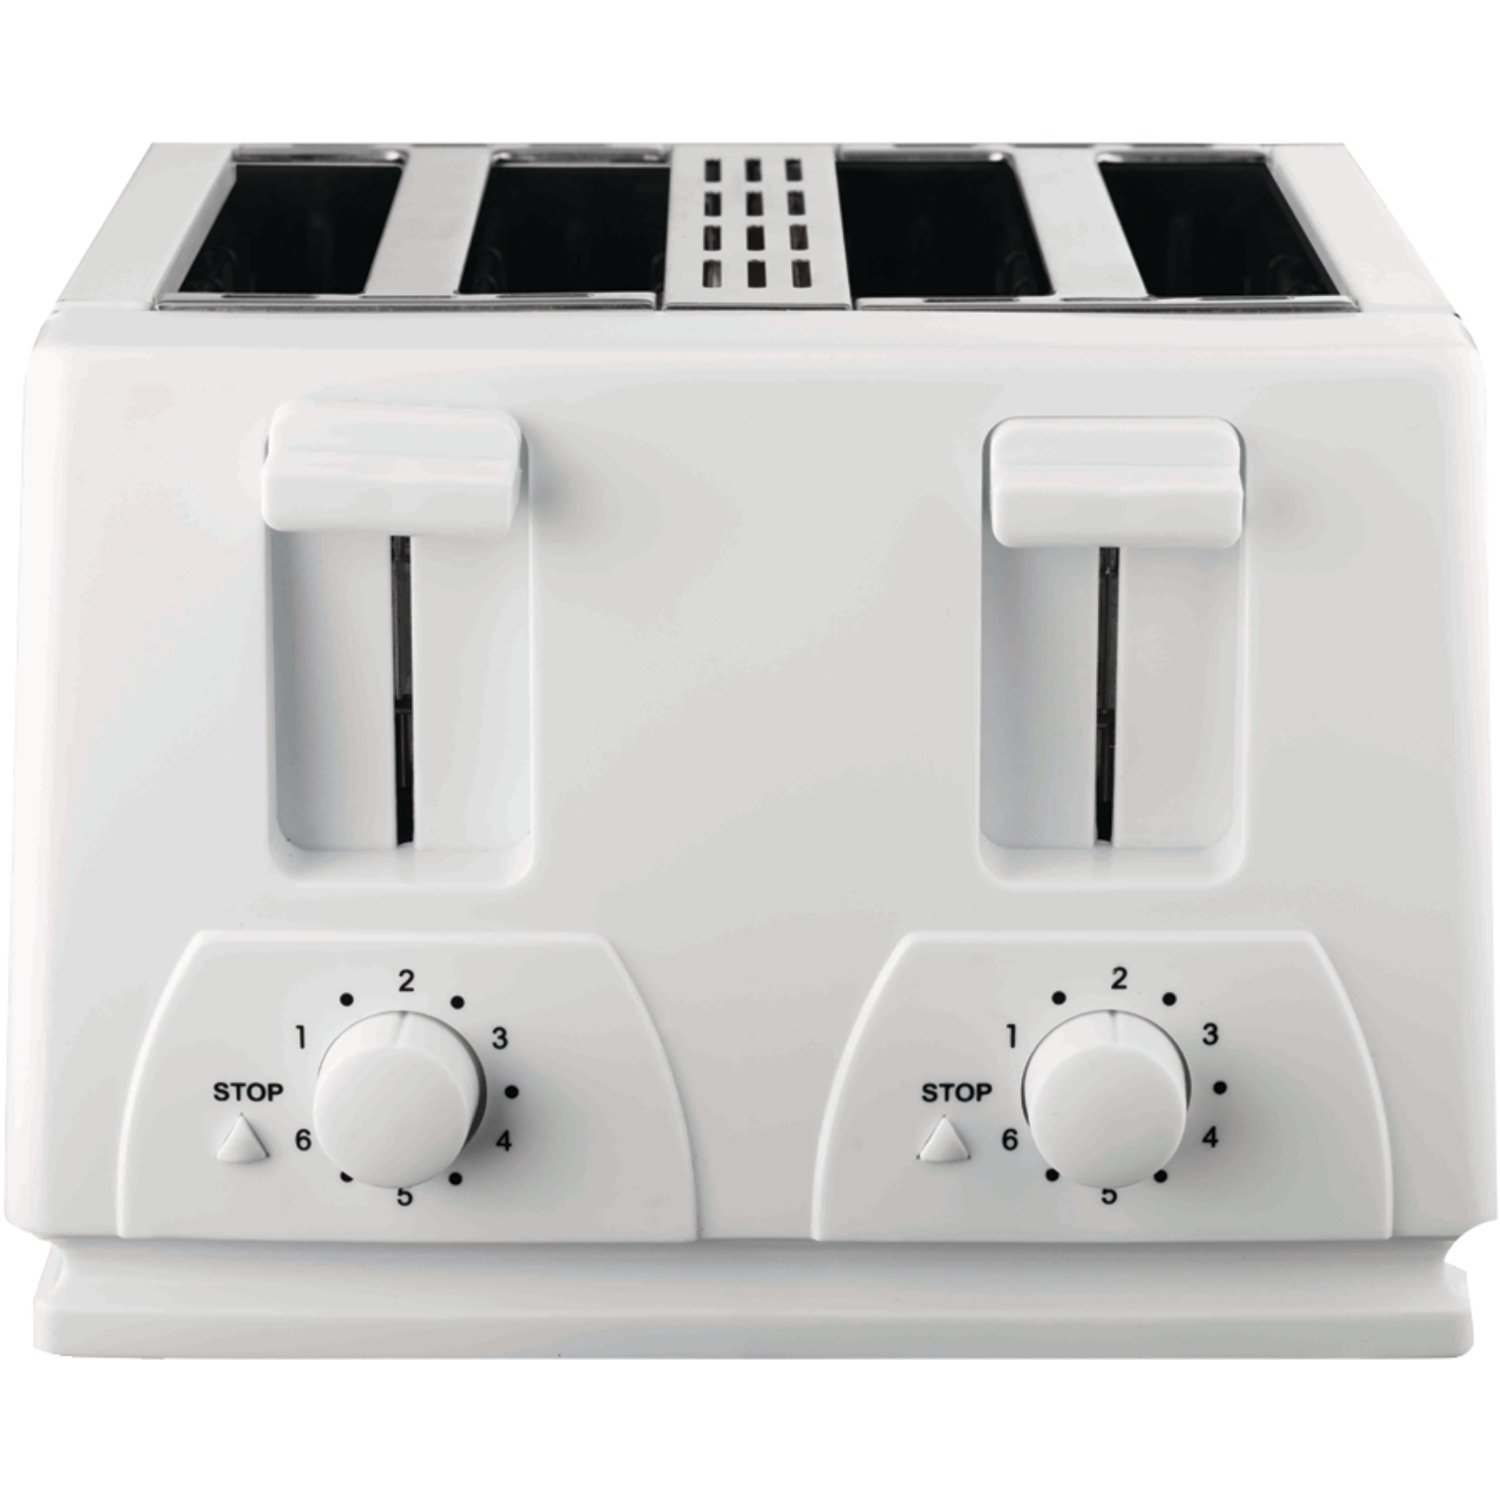 Brentwood 4 Slice Toaster Black Friday Deal 2019